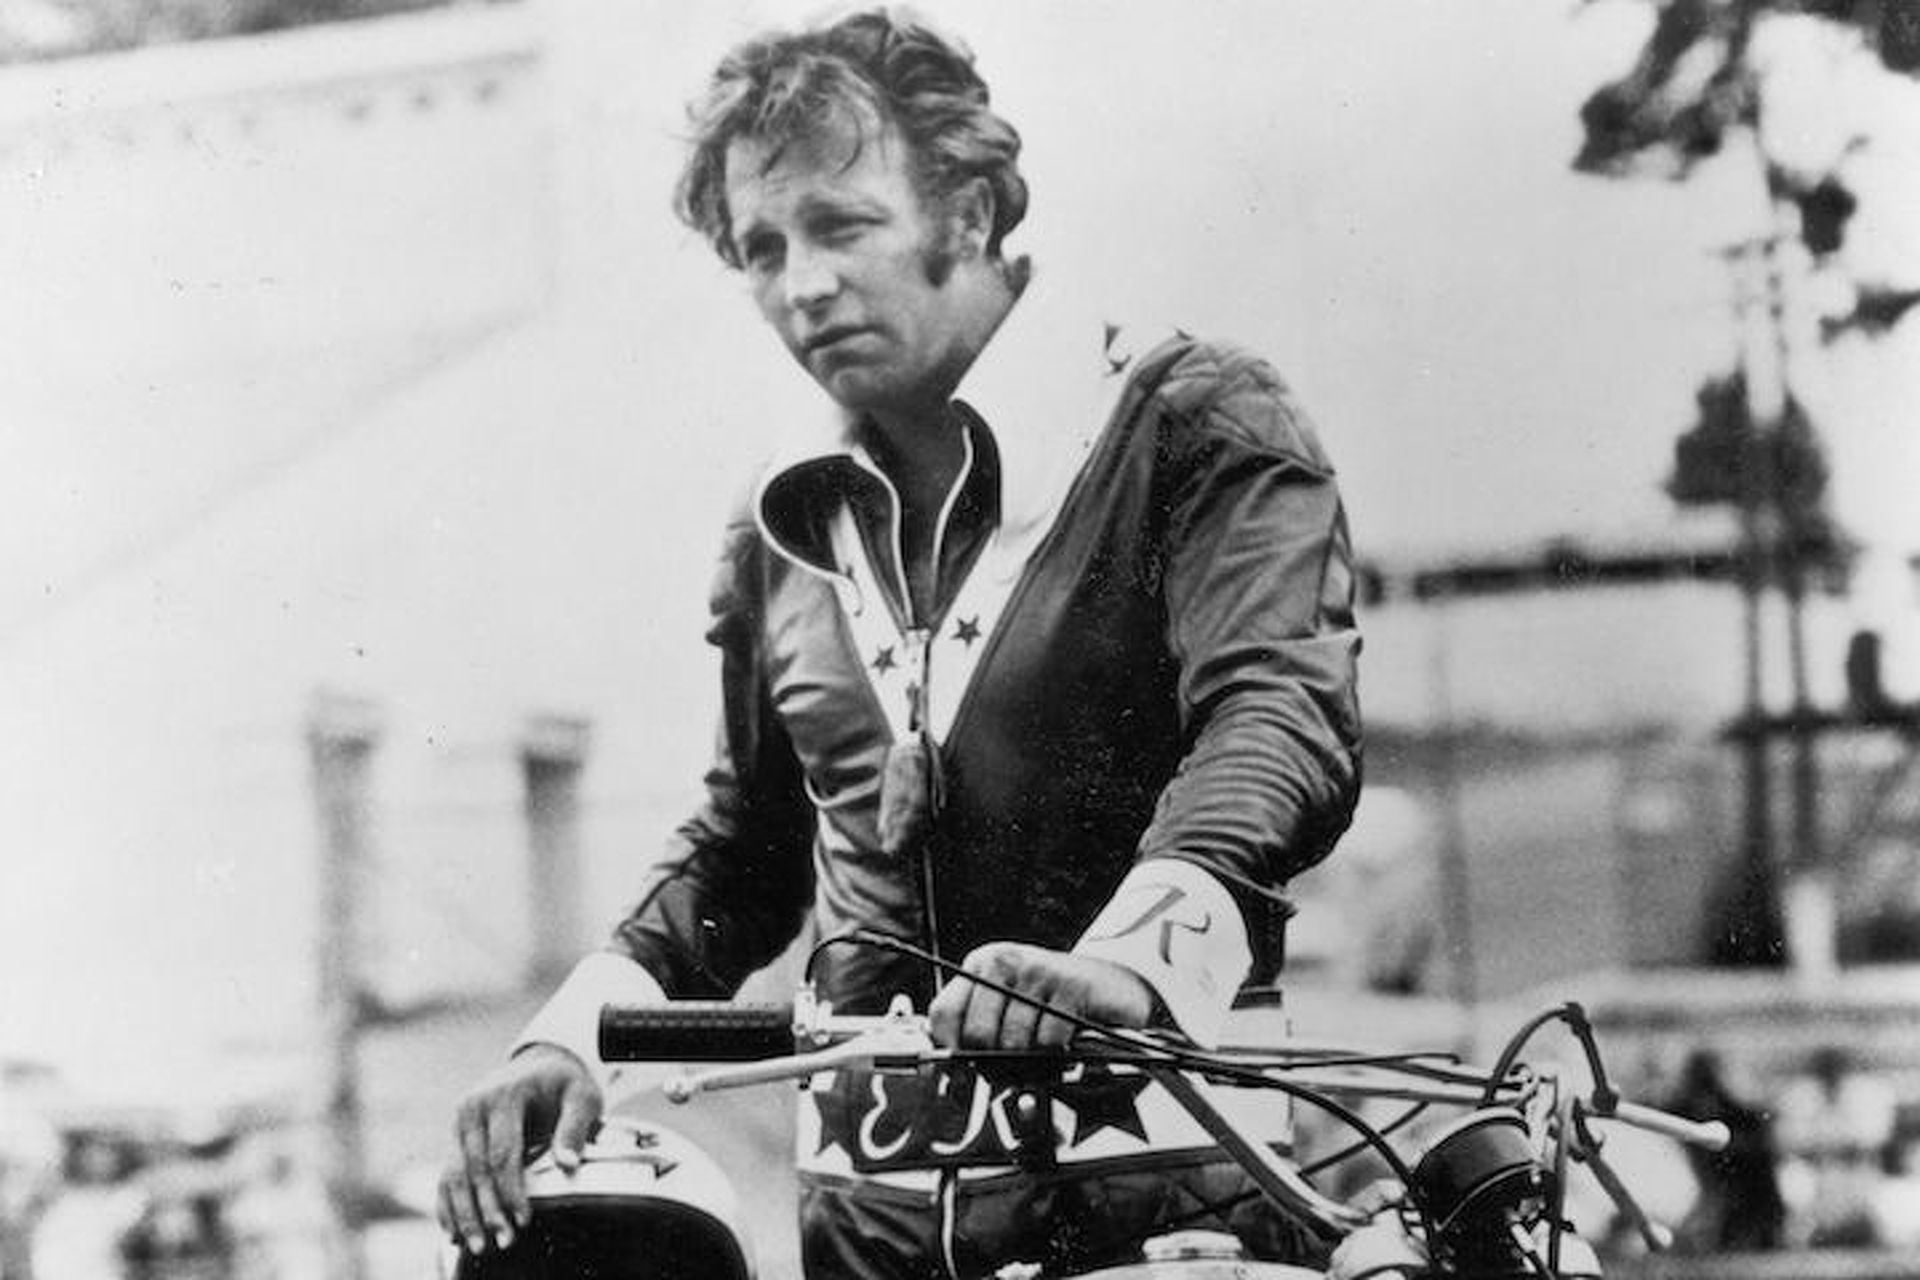 Flirting with Disaster: The Amazing Story of Evel Knievel